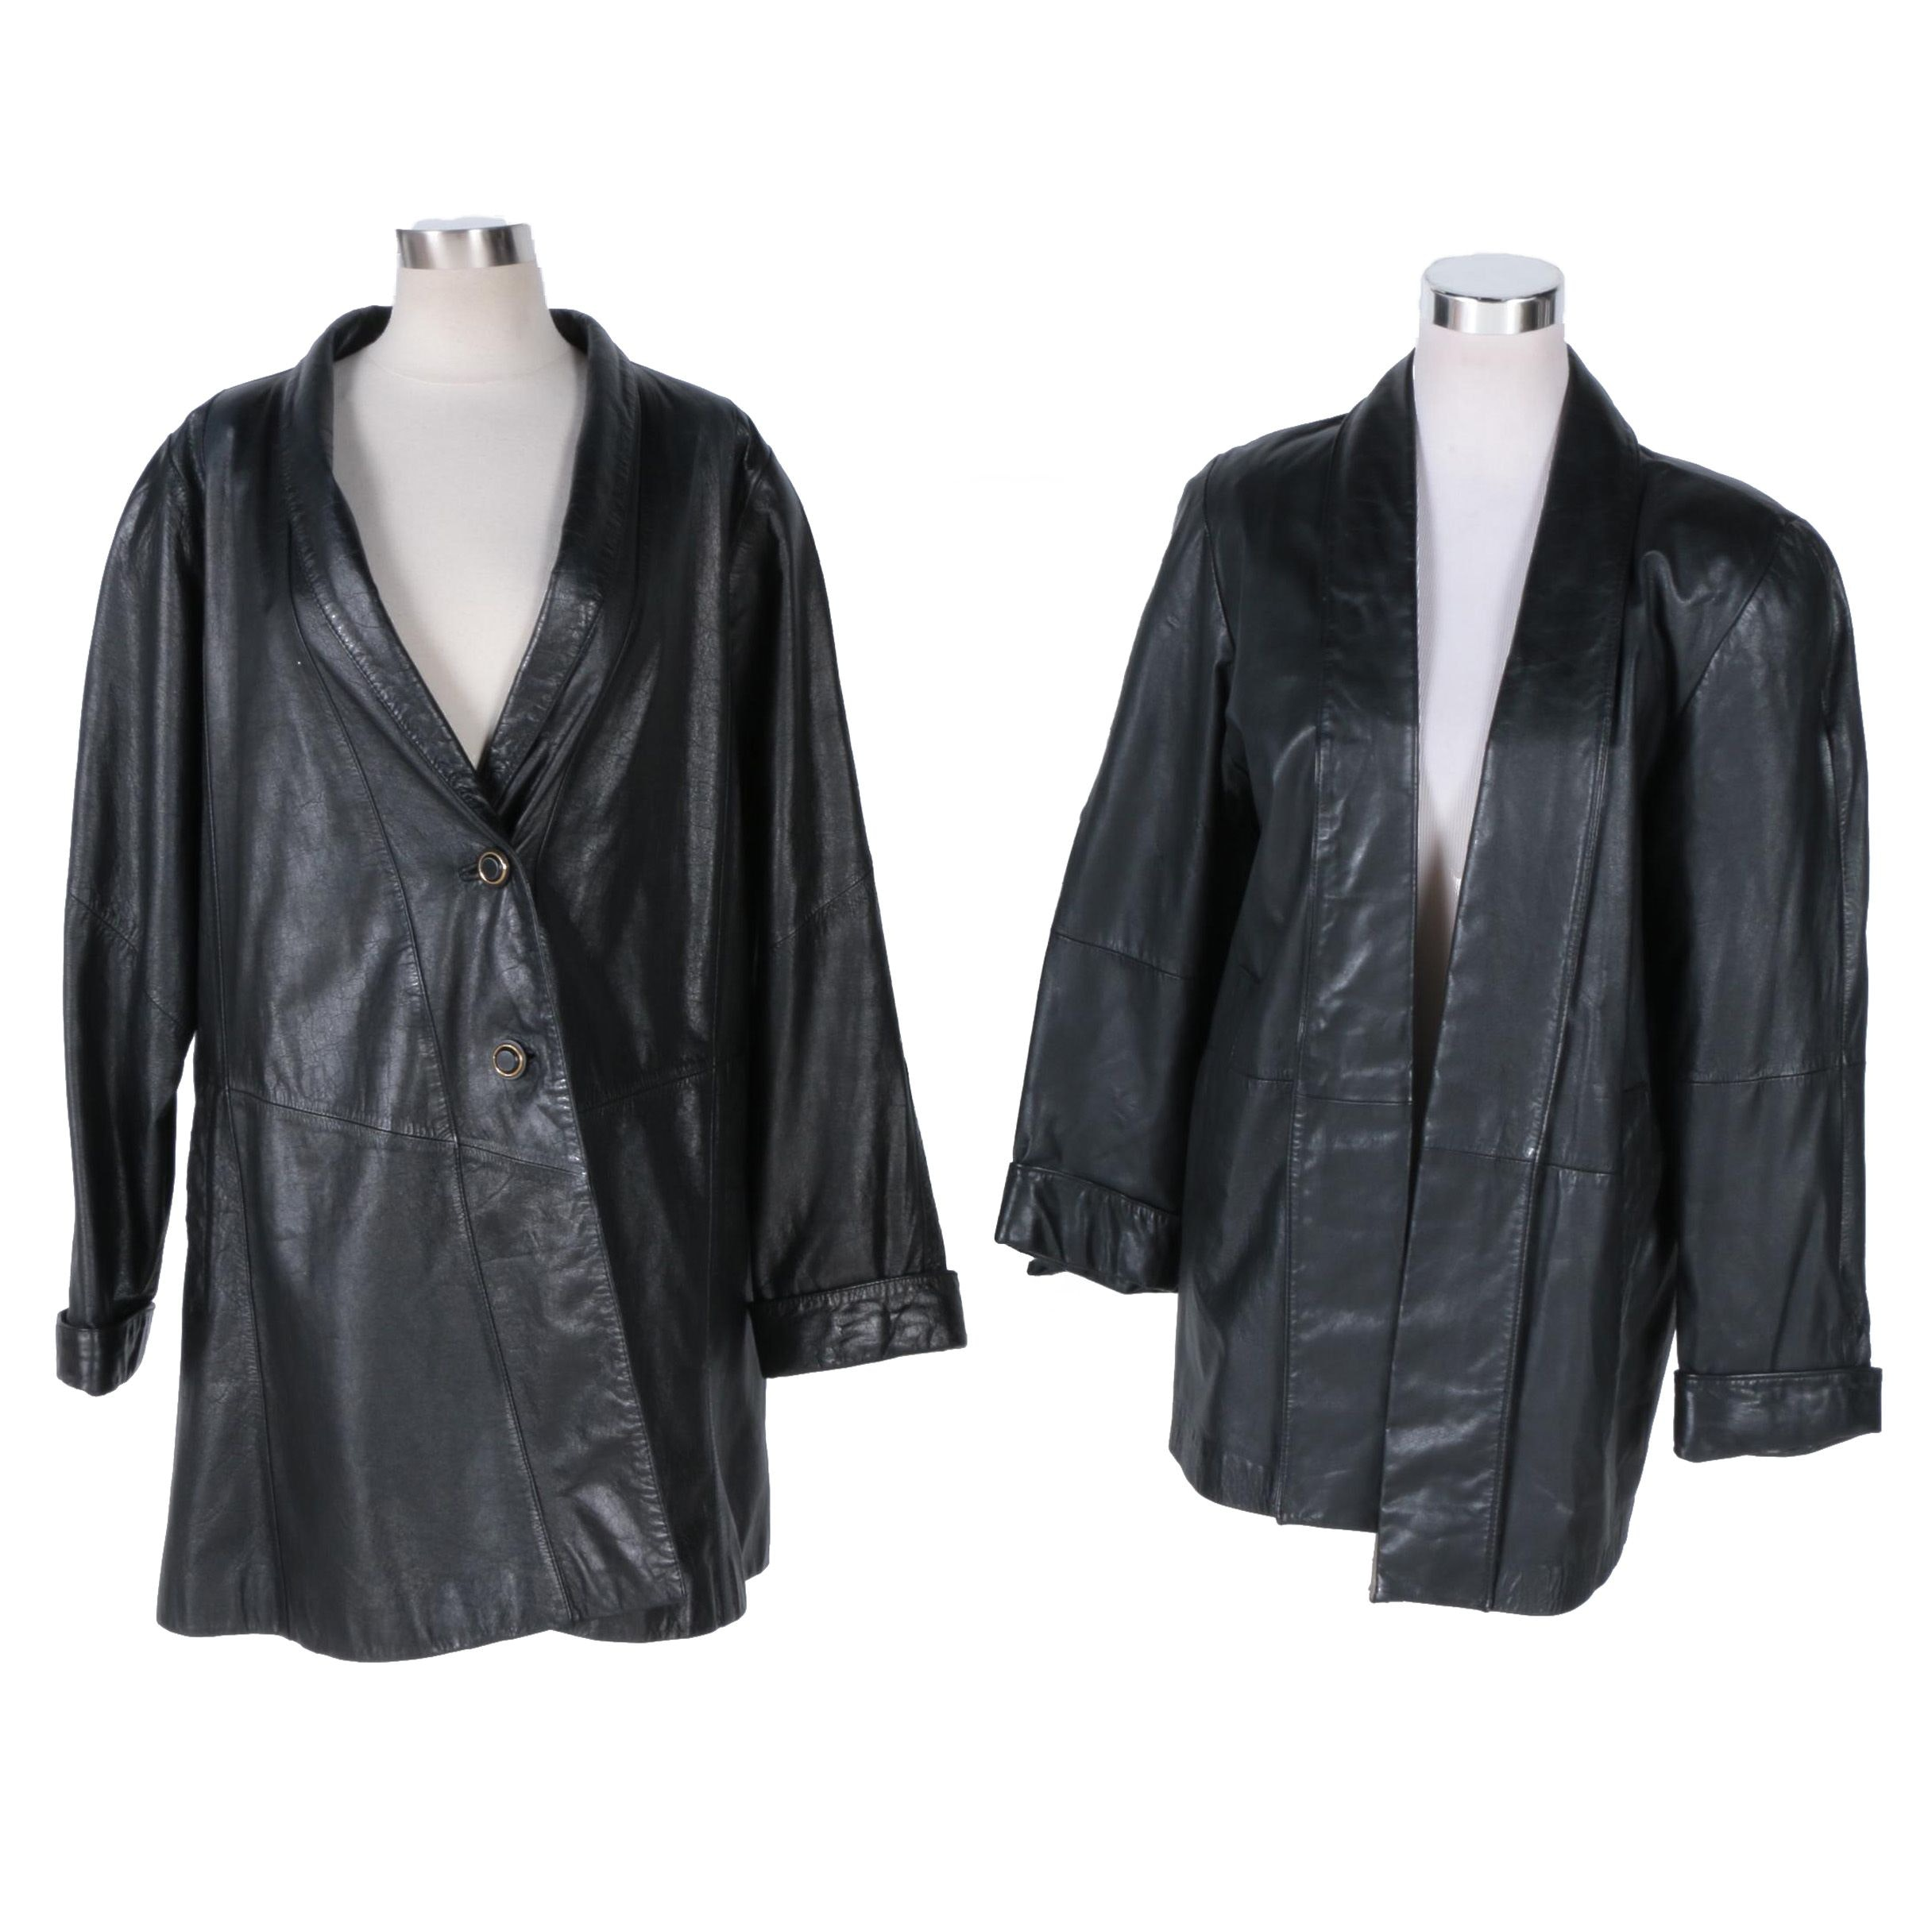 Women's G III and Lord & Taylor Black Leather Jackets